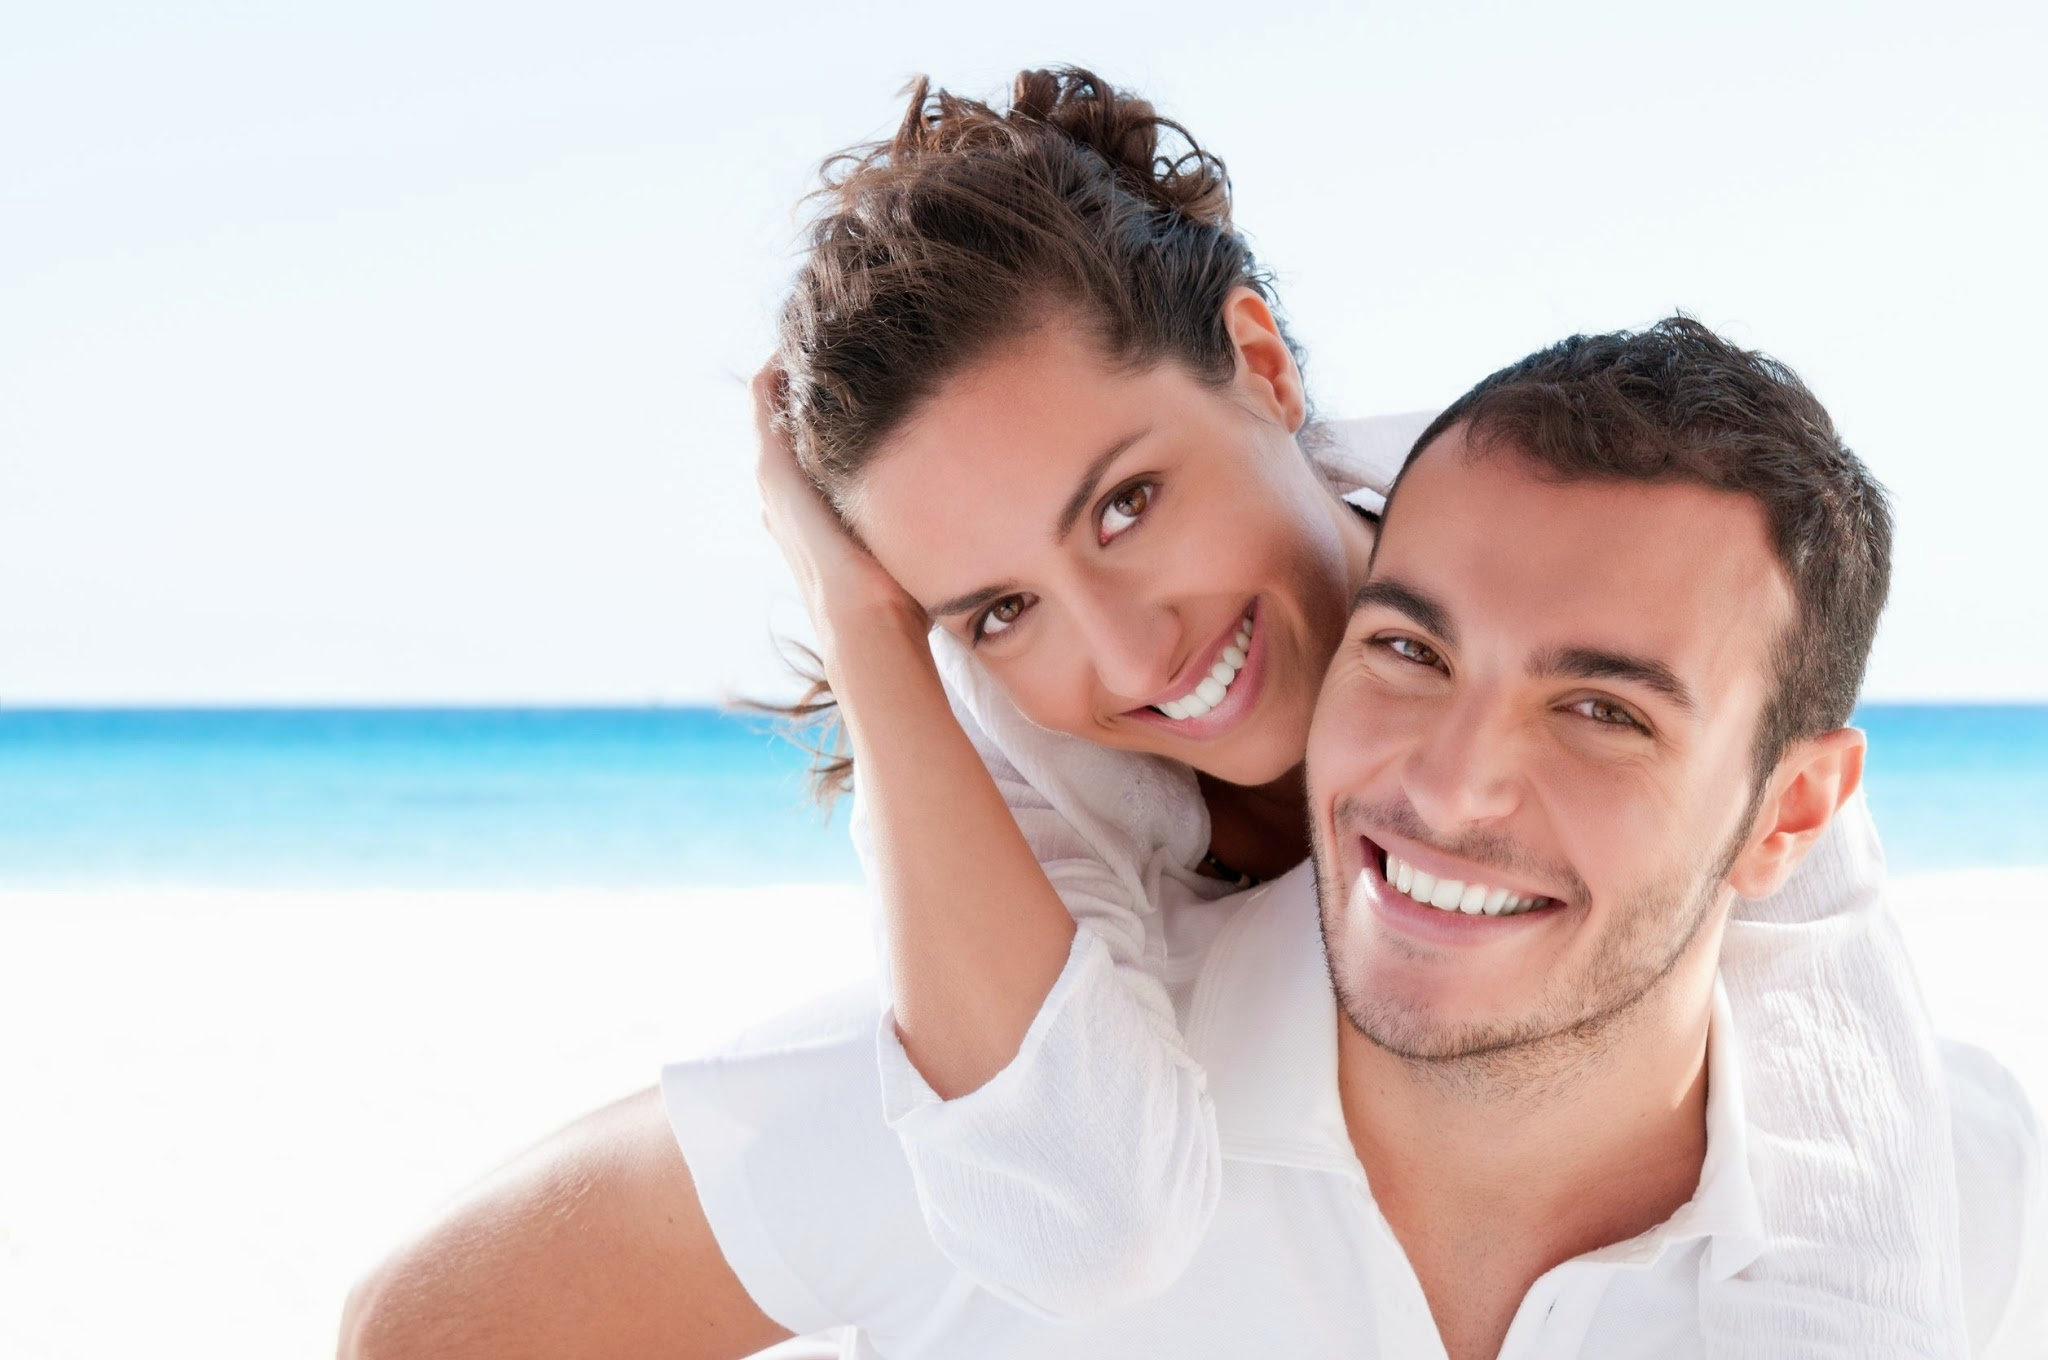 Young couple smiling and showing off how restorative dentistry services keeps their smiles looking their best.